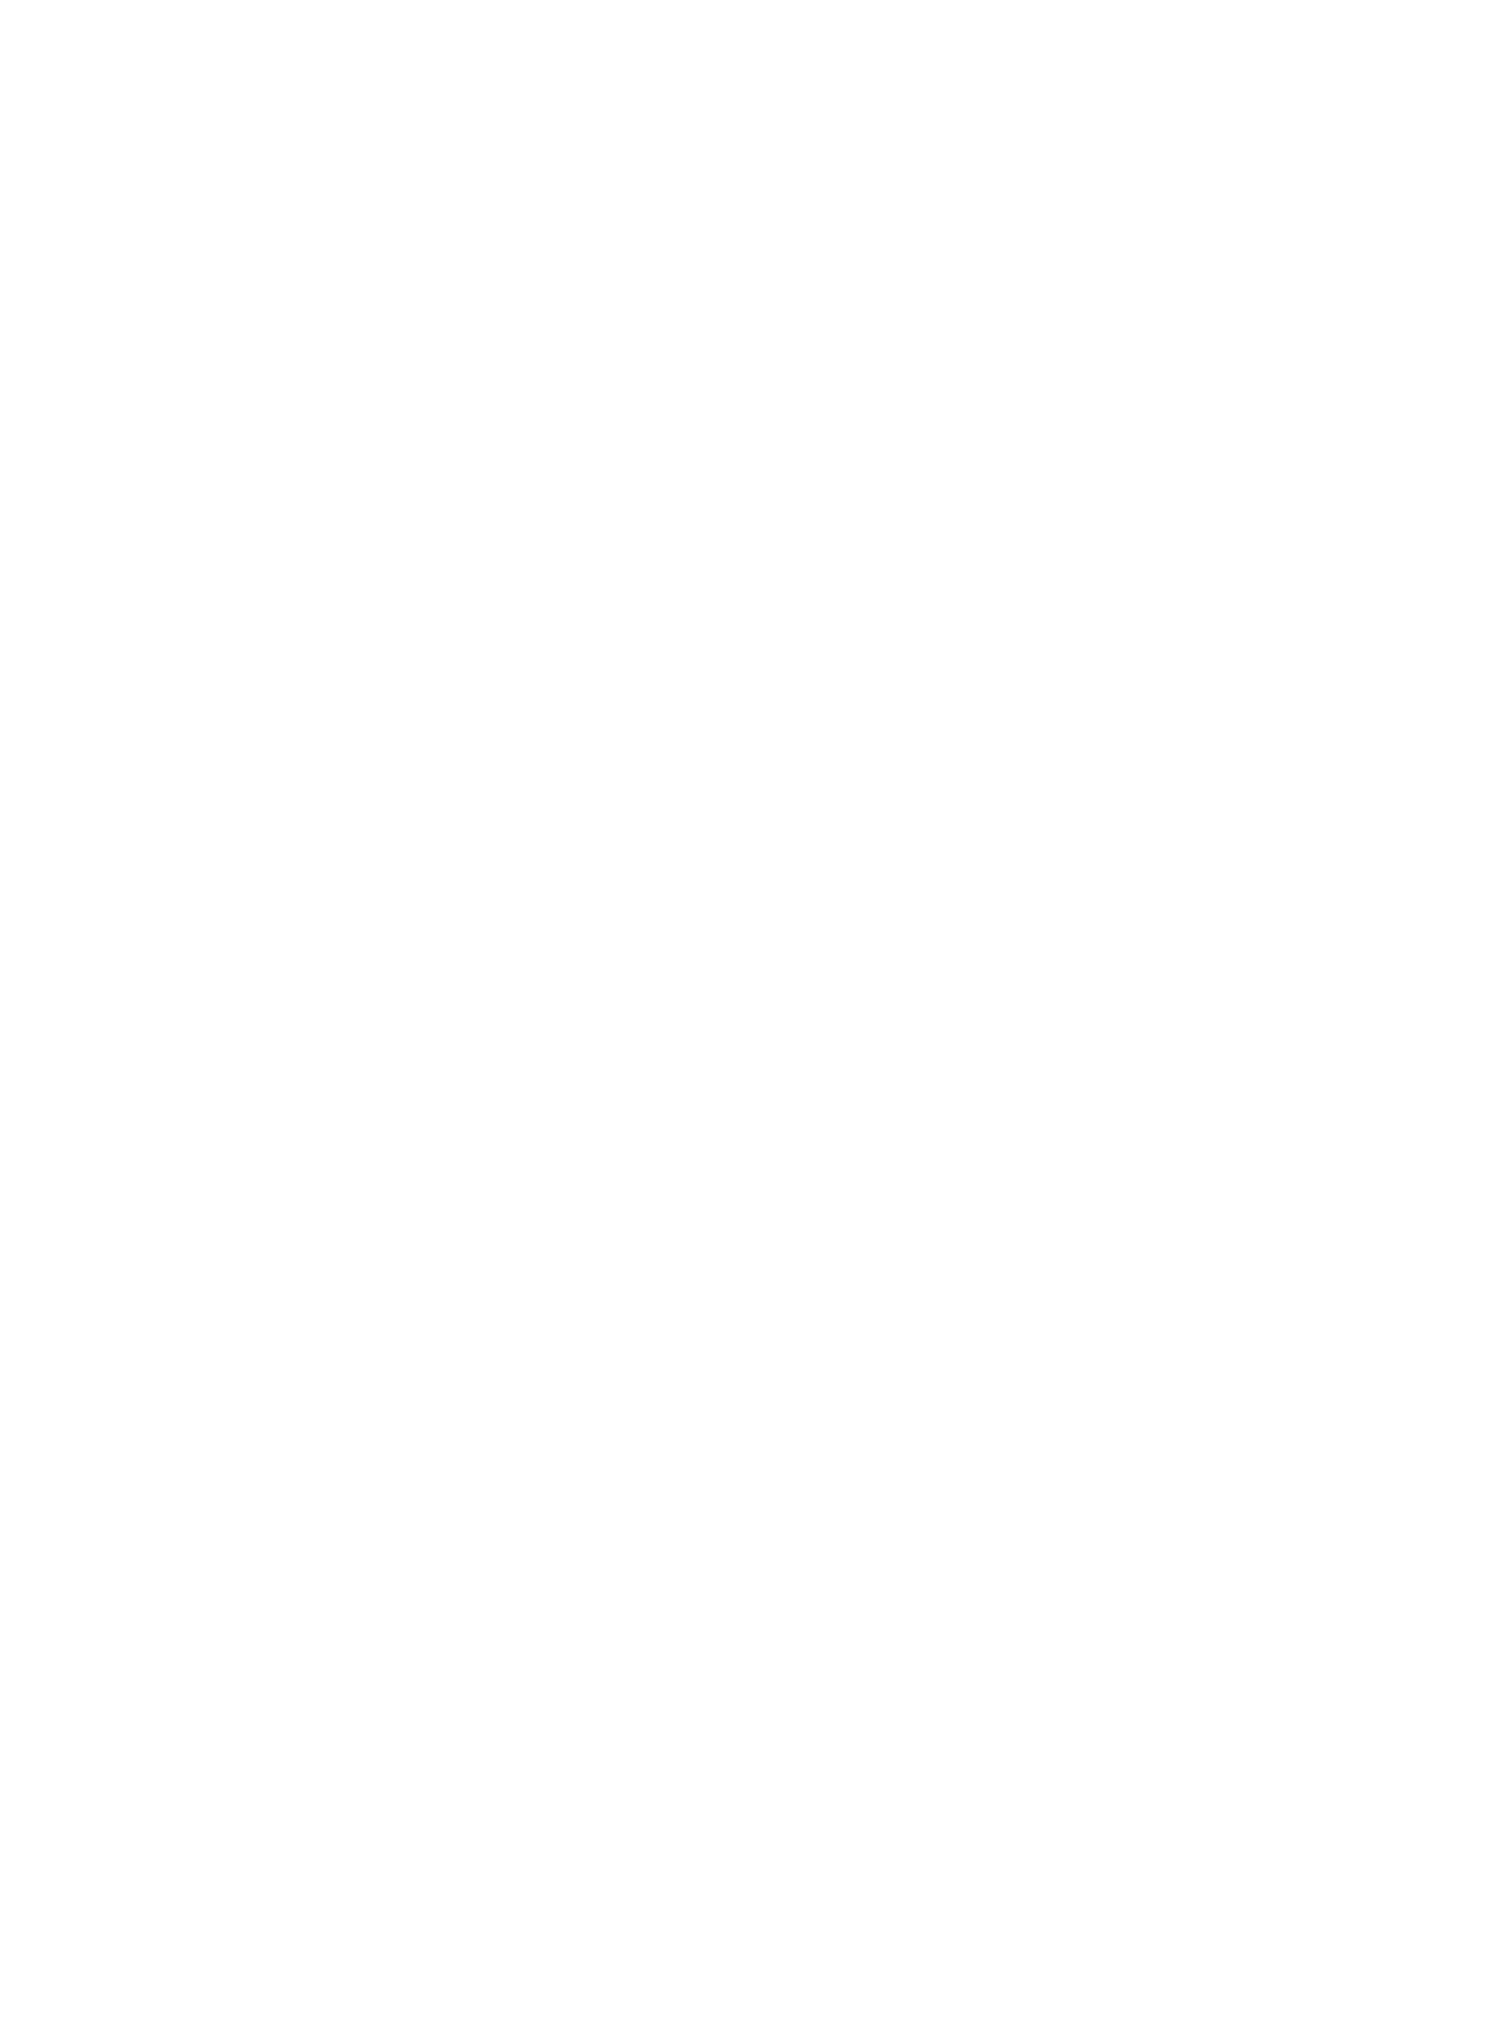 Ozark Showcase